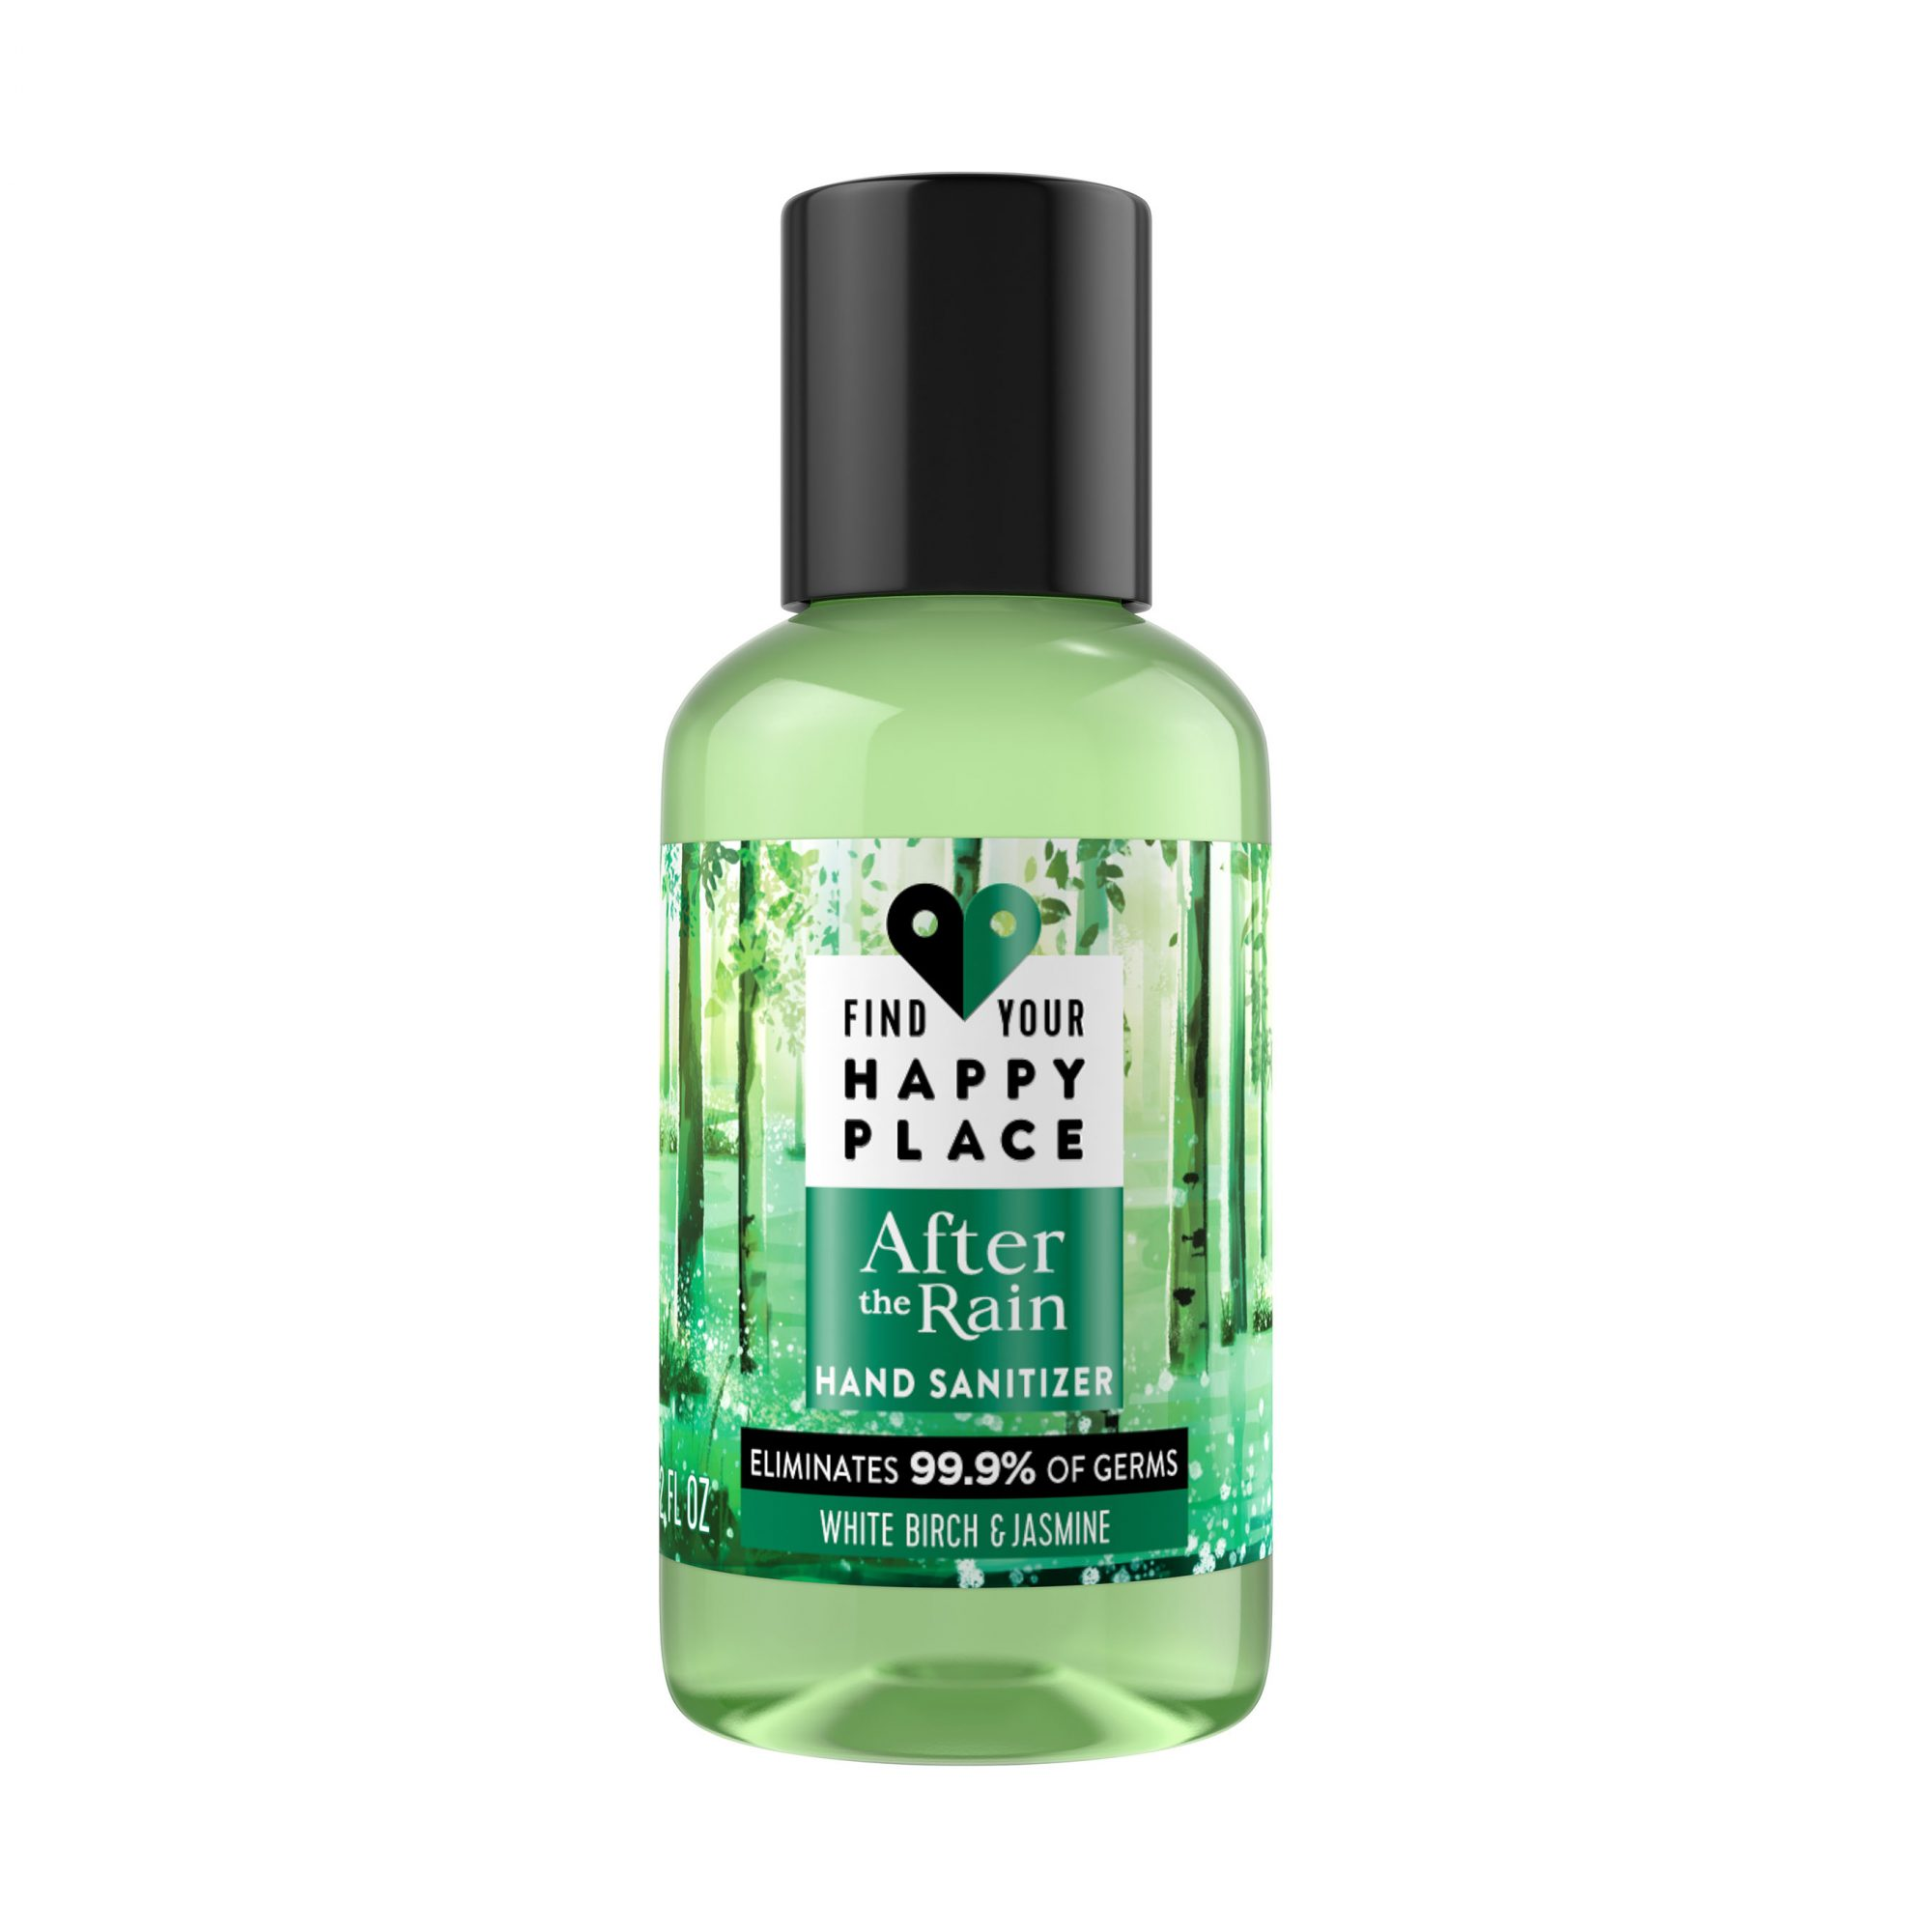 Beauty-Awards-Body-Find-Your-Happy-Place-Hand-Sanitizer-After-the-Rain